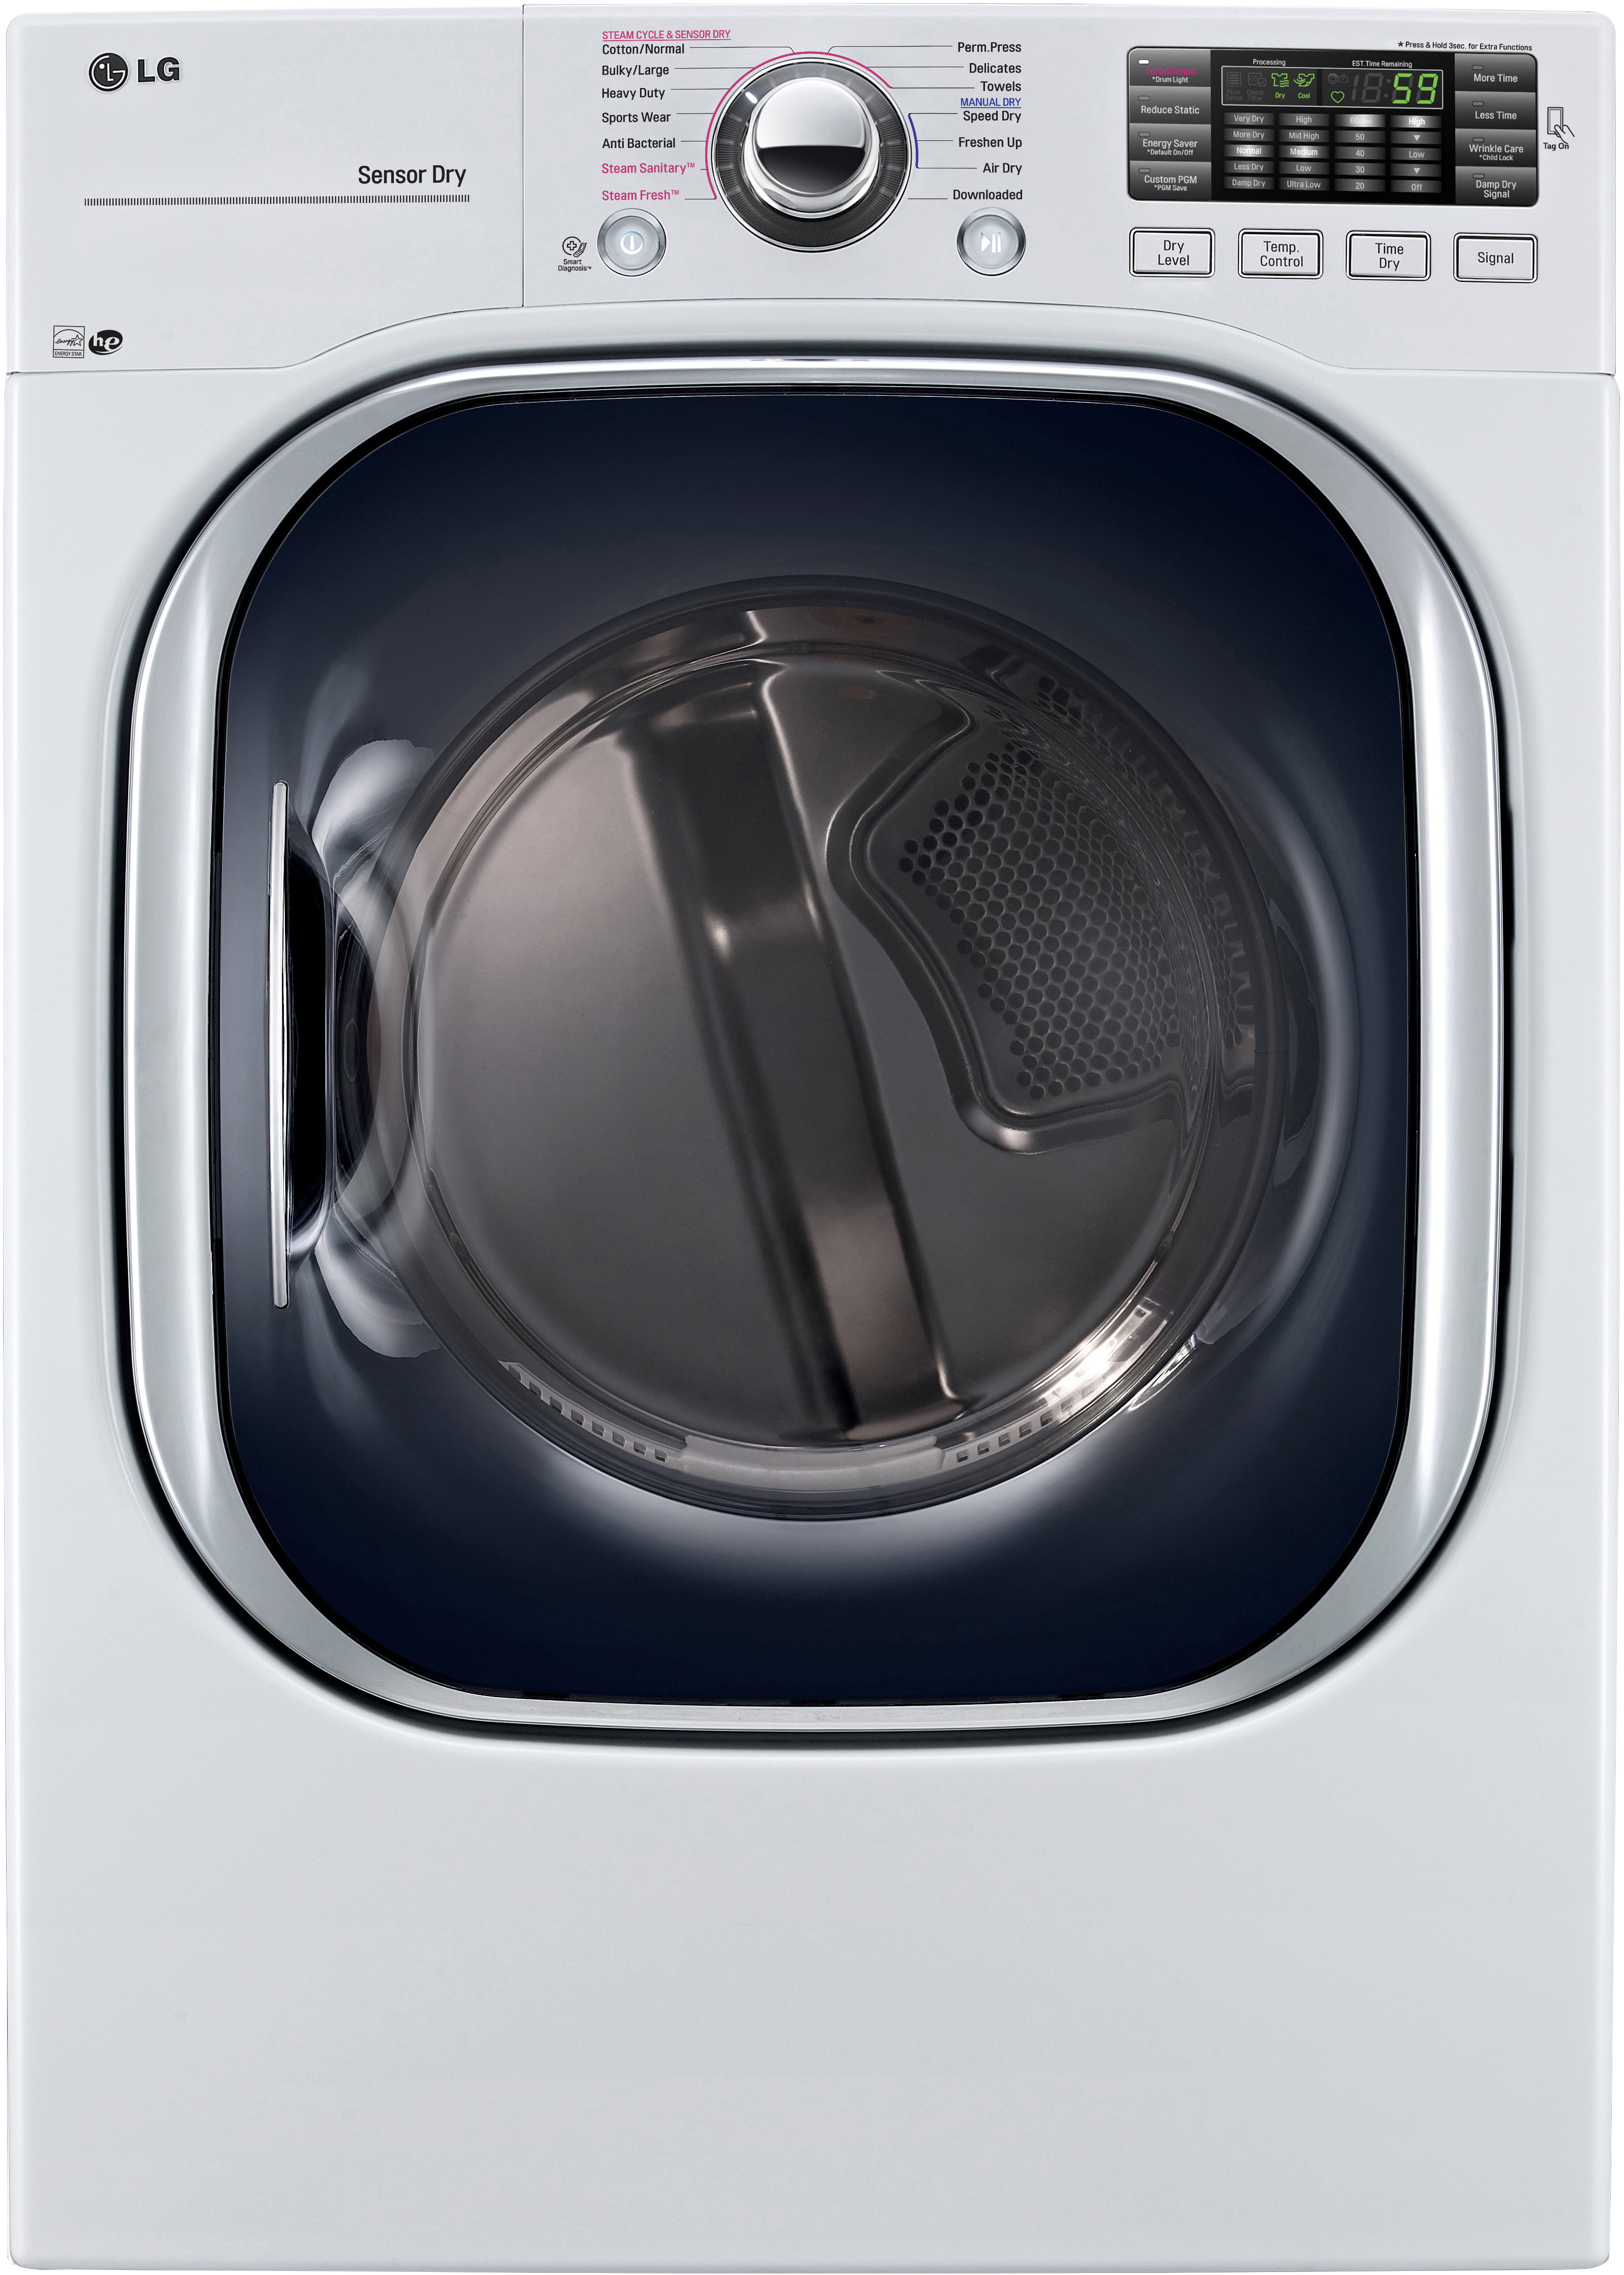 Lg 2 3 cu ft all in one washer and dryer - Lg 2 3 Cu Ft All In One Washer And Dryer 25